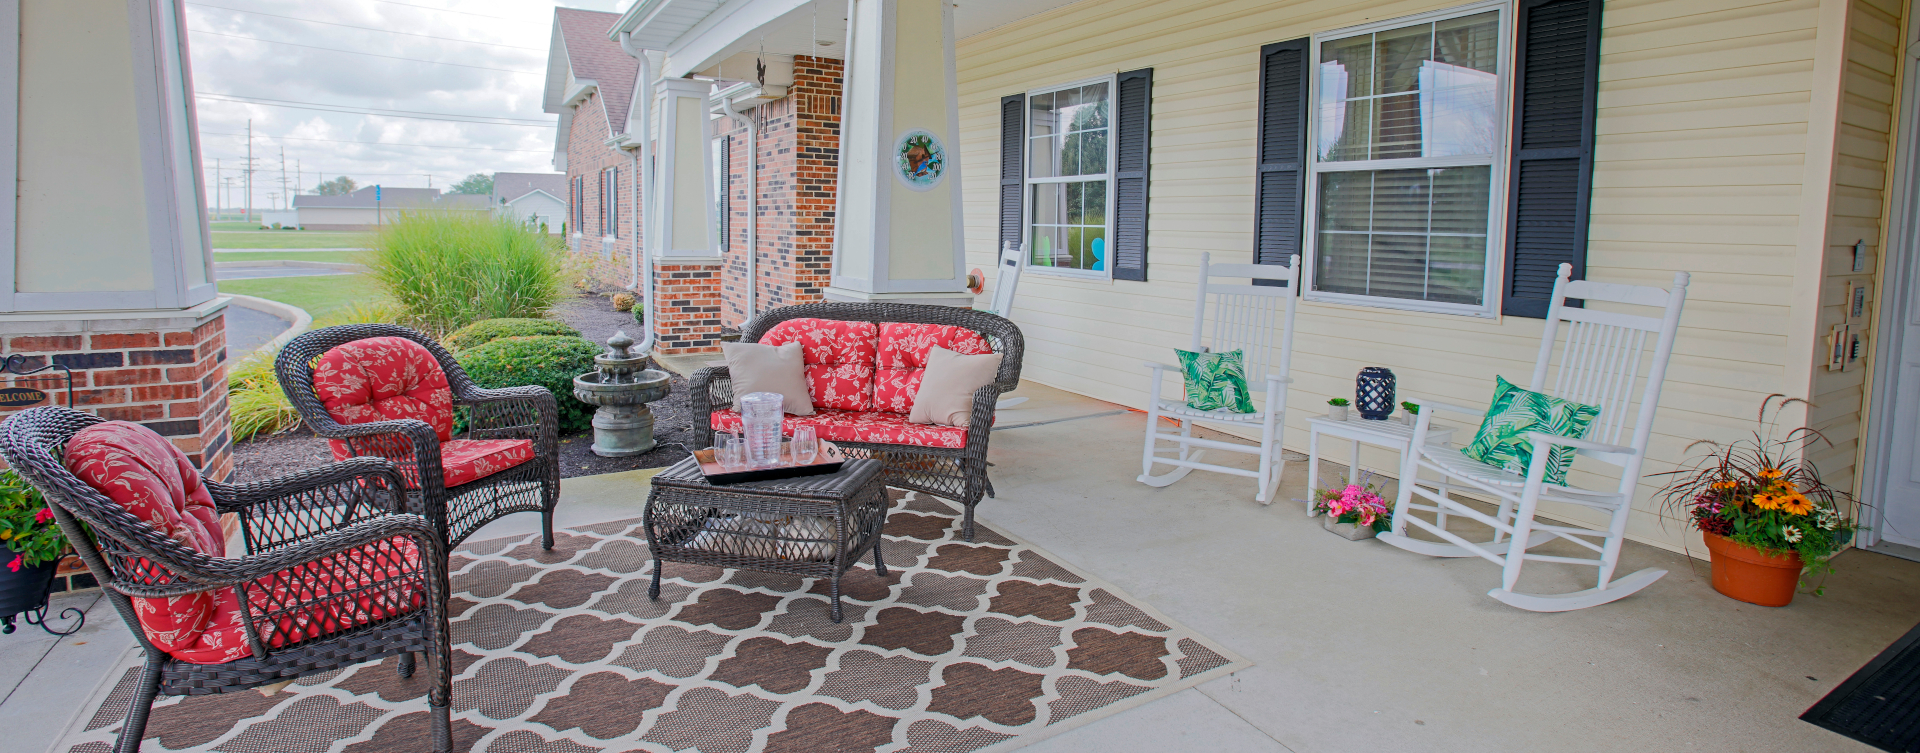 Relax in your favorite chair on the porch at Bickford of Wabash